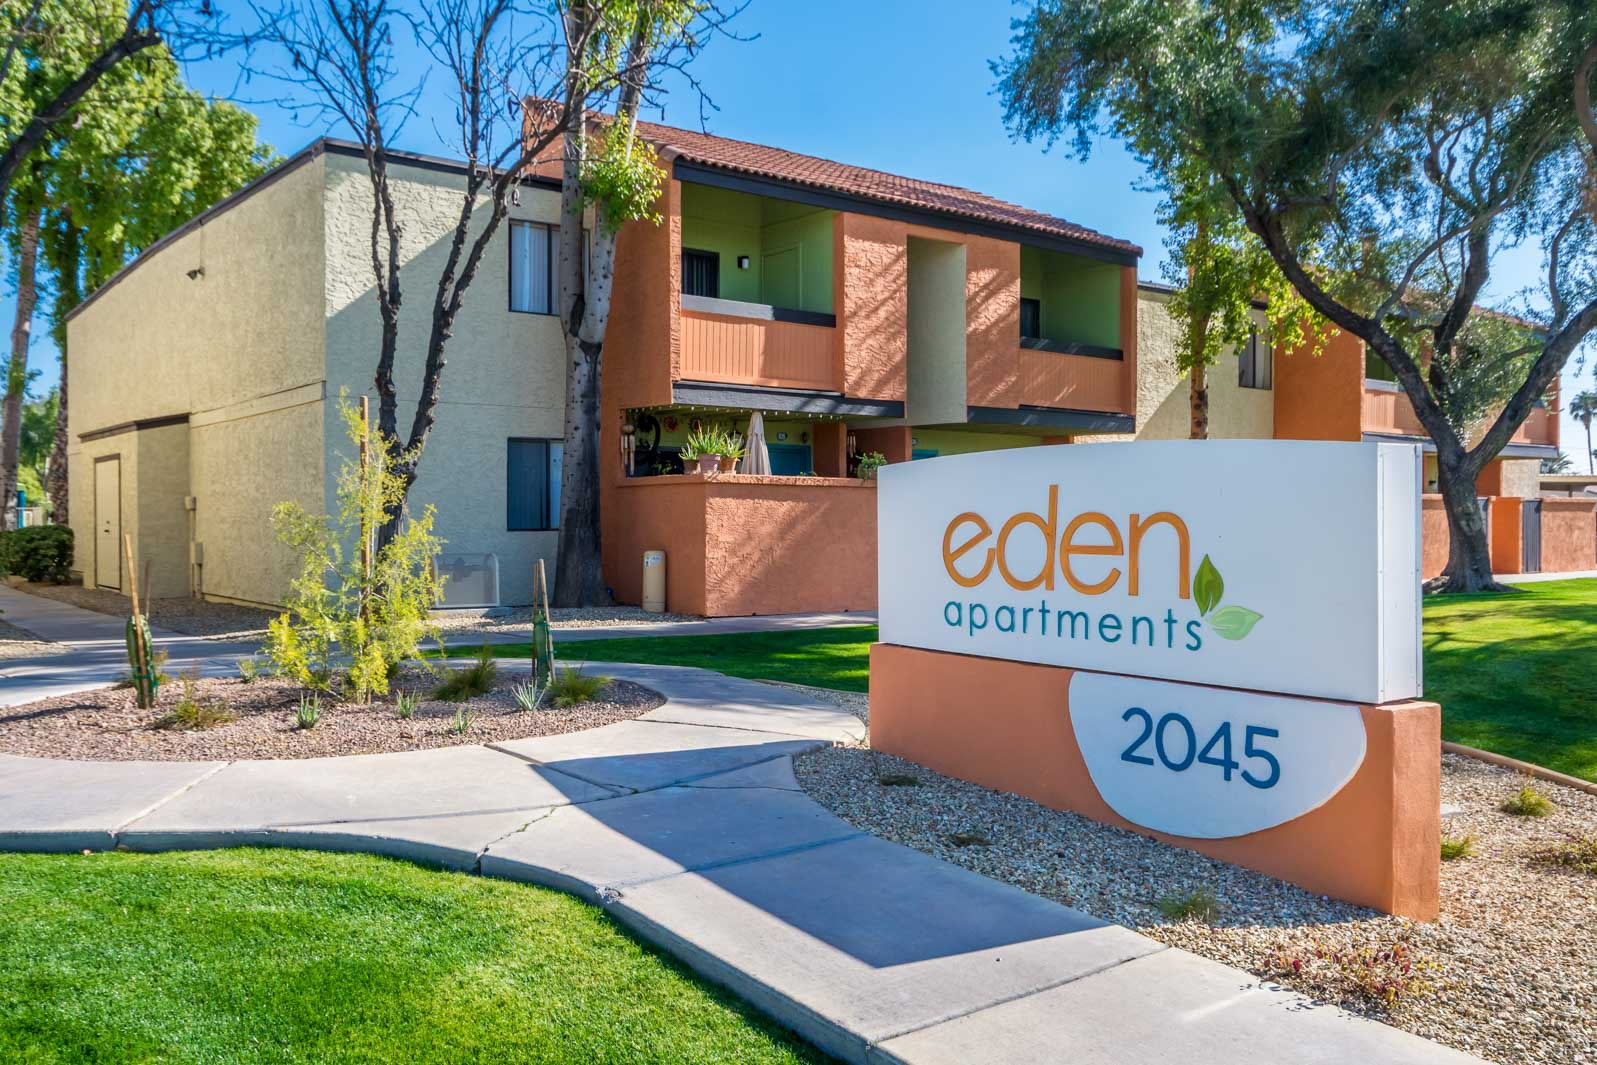 Eden Apartments - Exteriors-2